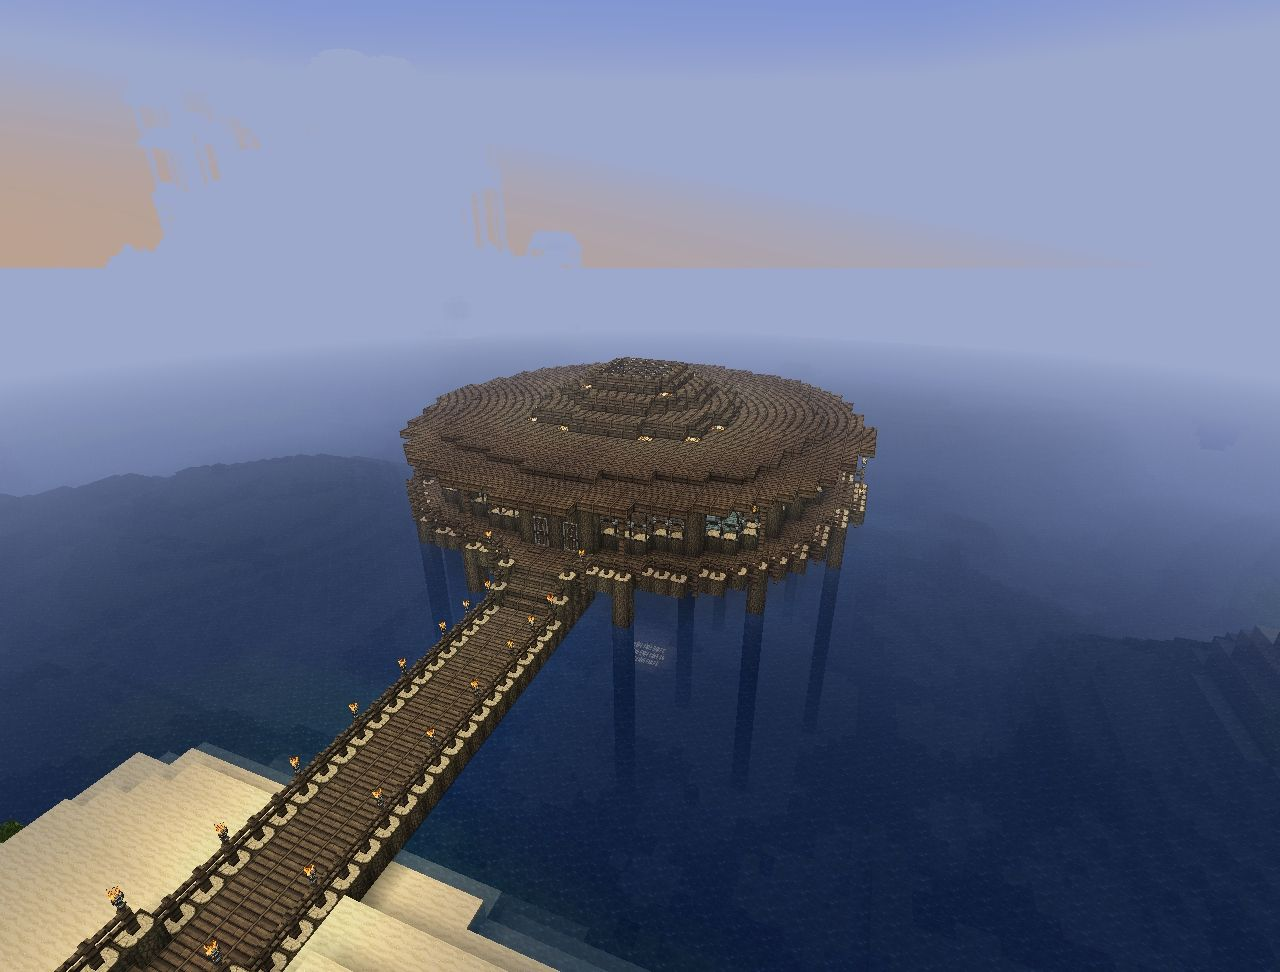 Mah new and improved beach house d minecraft project for Beach house designs minecraft